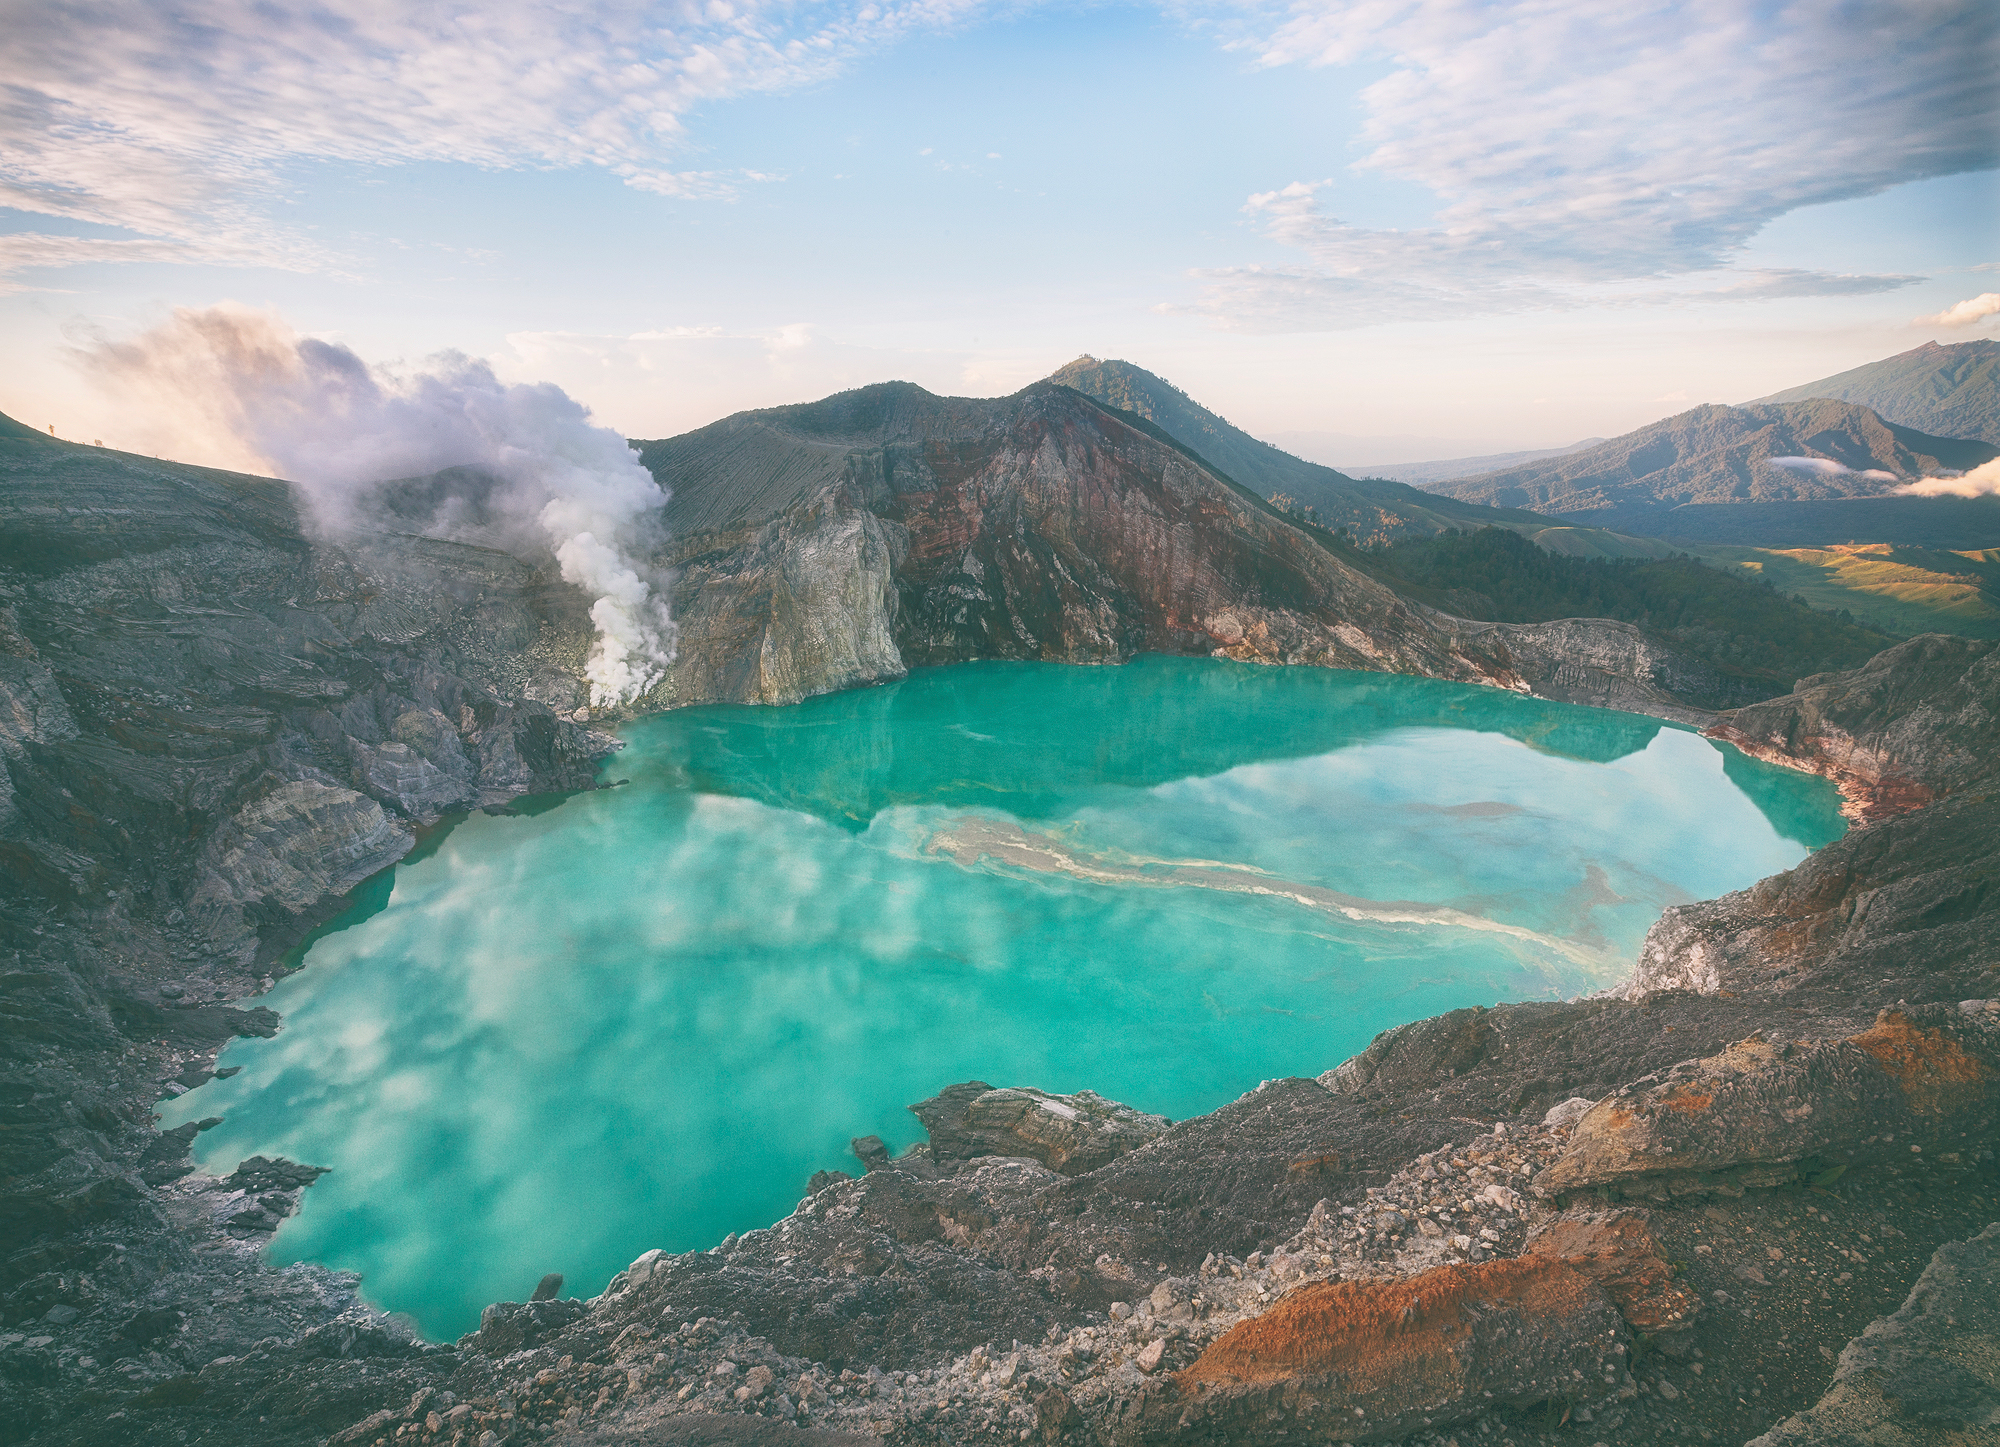 Ijen Green Lake